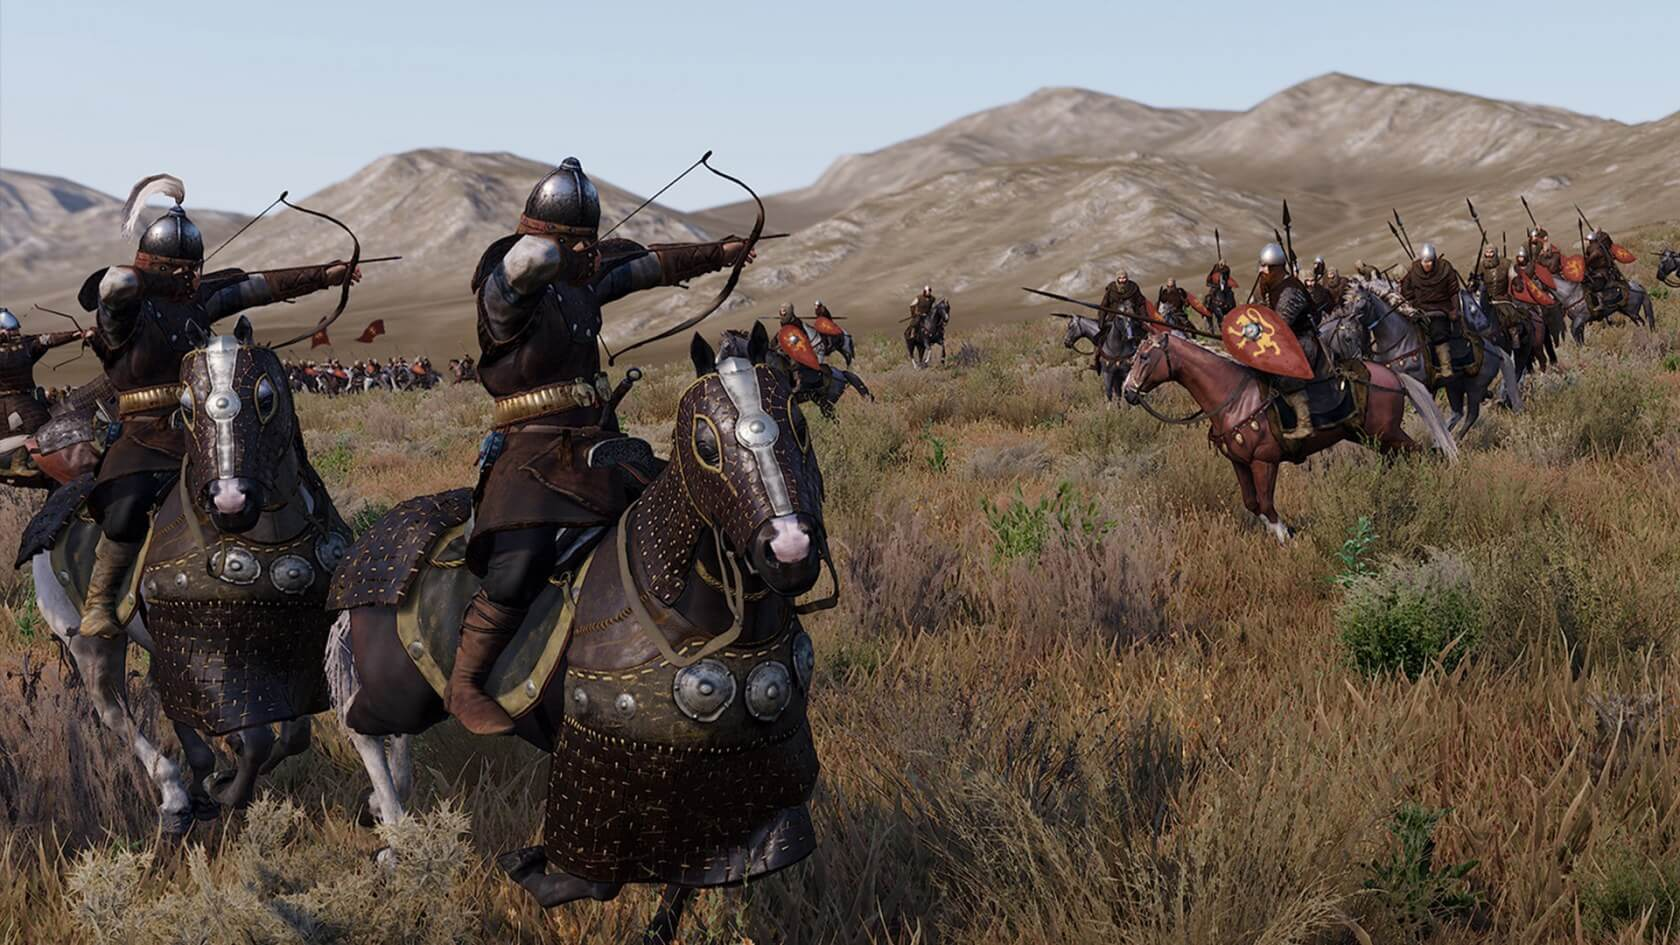 Mount And Blade 2 Bannerlord Release Date And Everything You Need